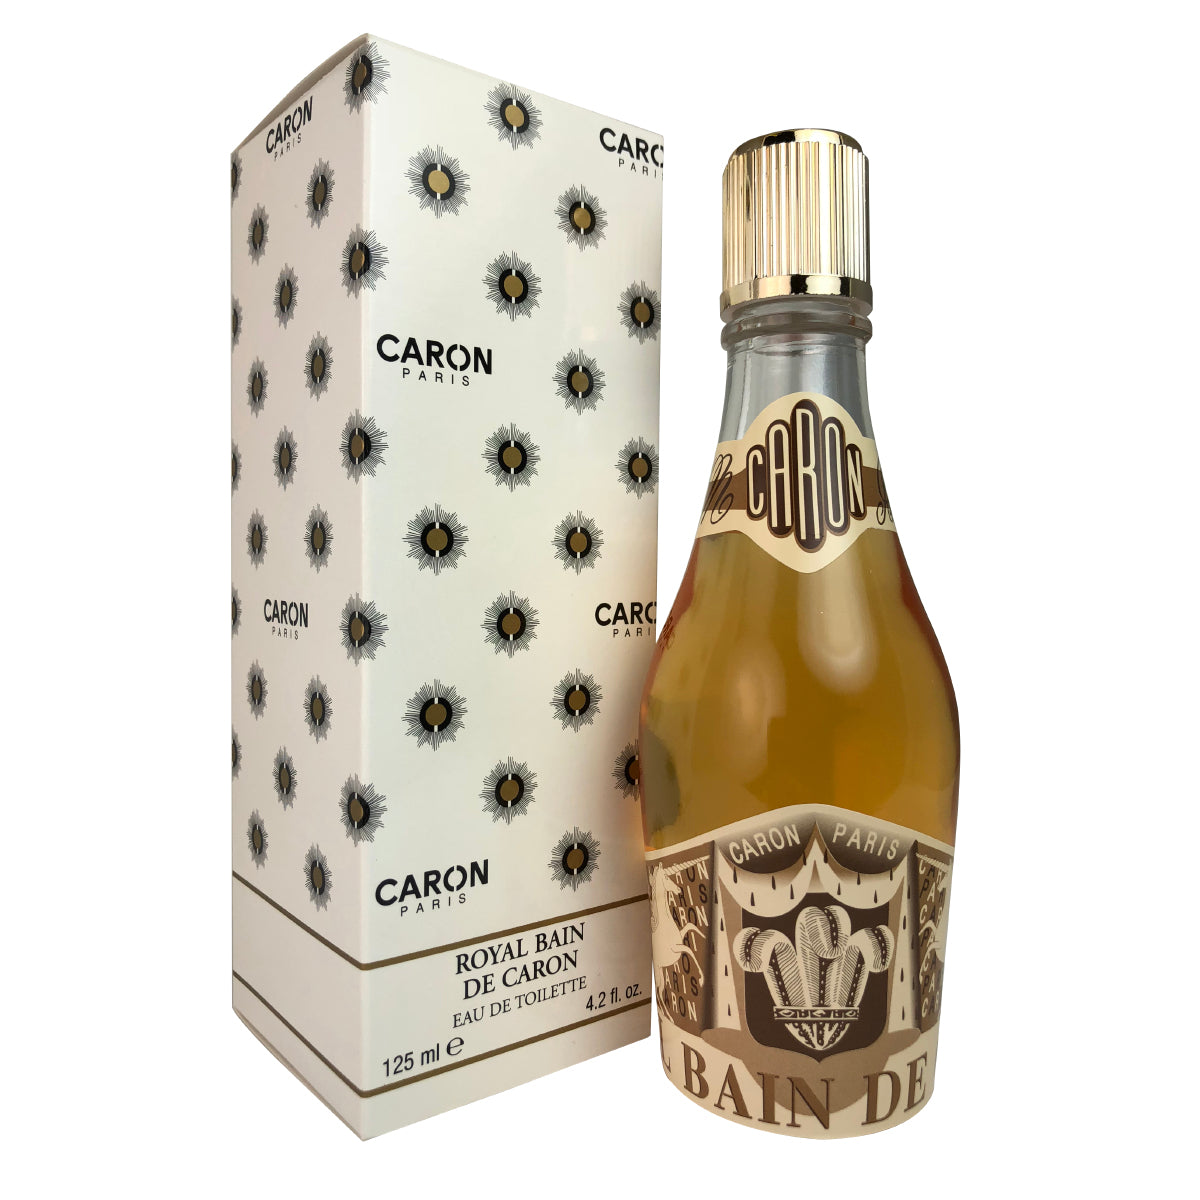 Royal Bain for Women by Caron 4.2 oz Eau de Toilette Splash